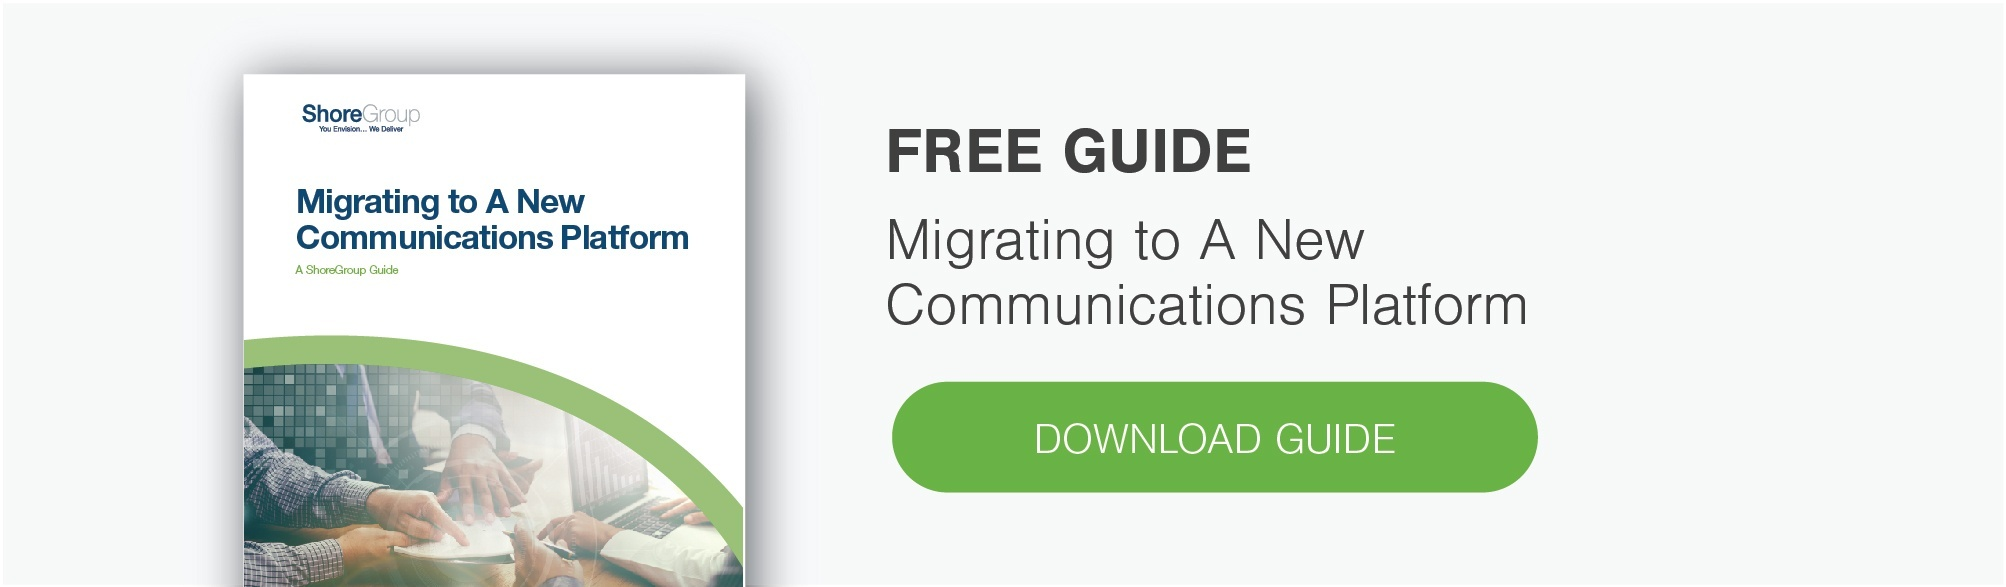 "Download our free guide, ""Migrating to a New Communications Platform"""